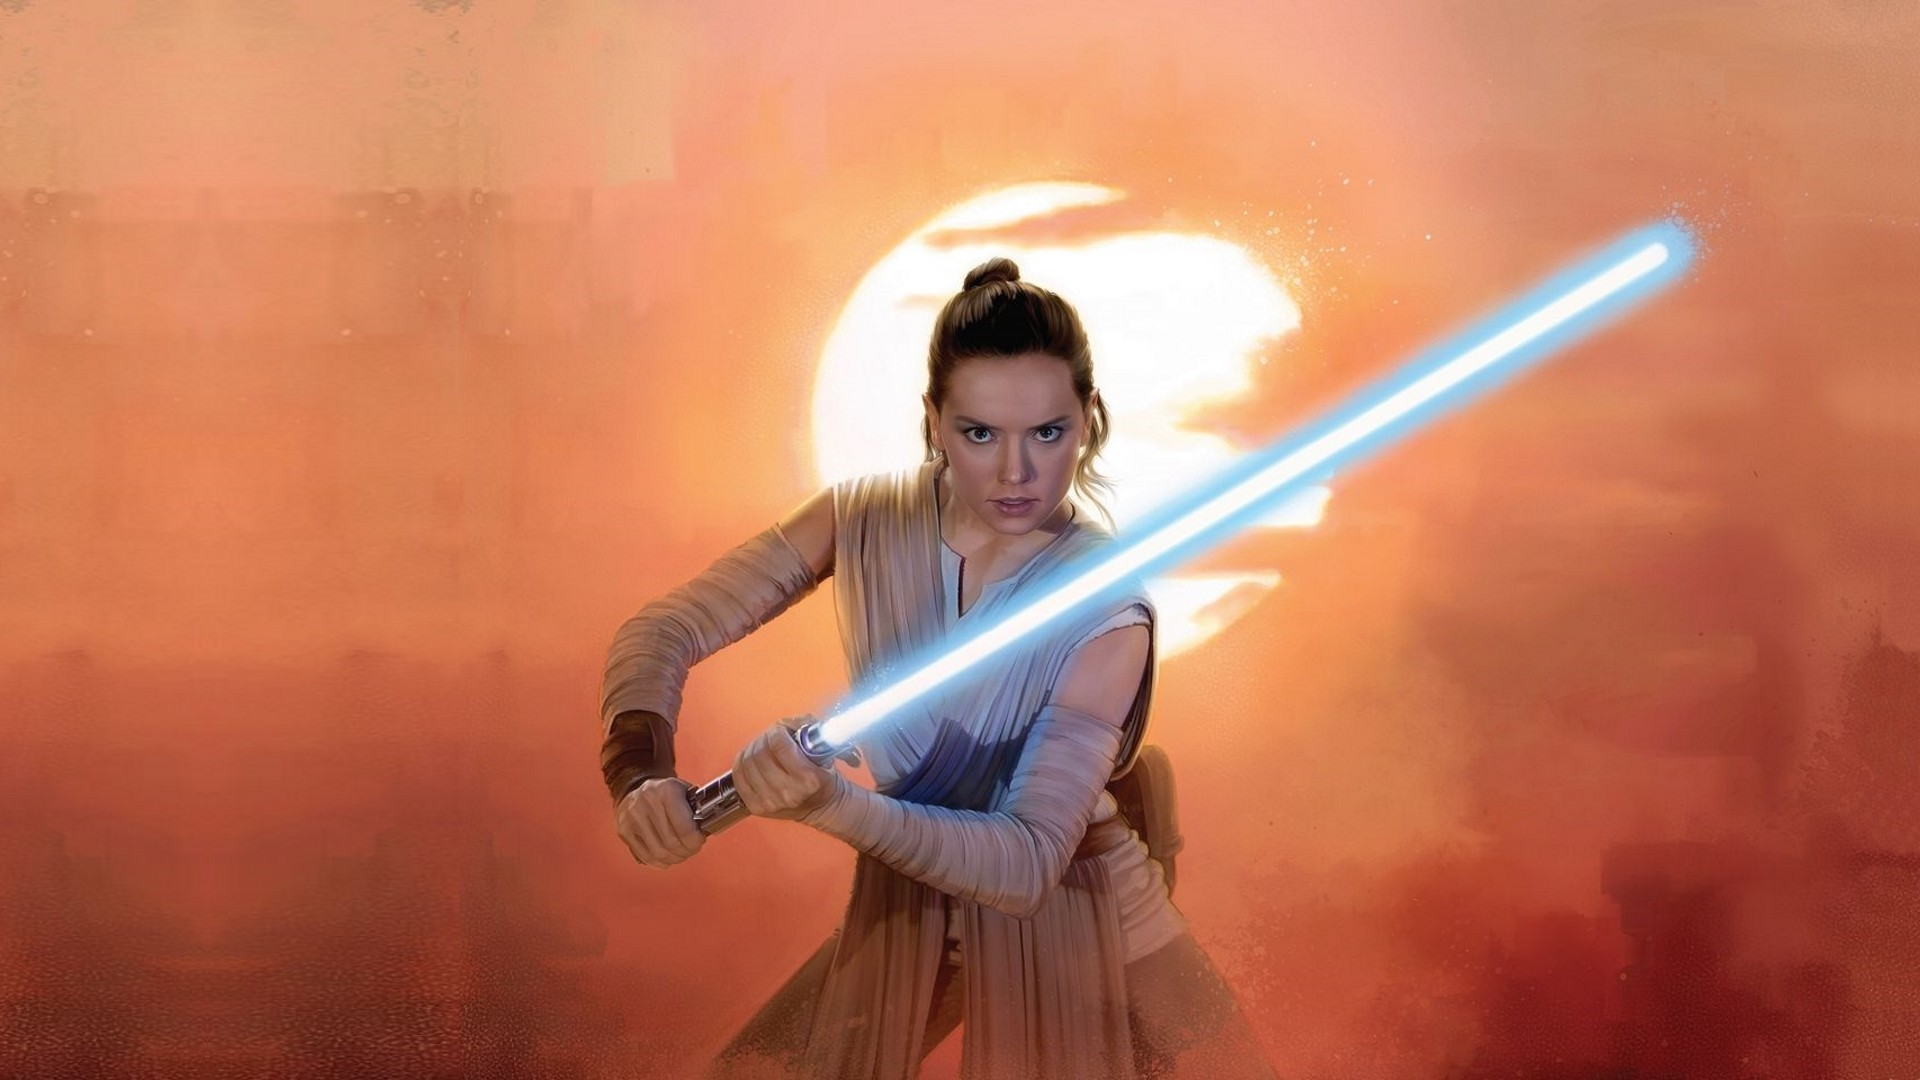 Daisy Ridley Rey Star Wars Lightsaber Jedi Wallpapers